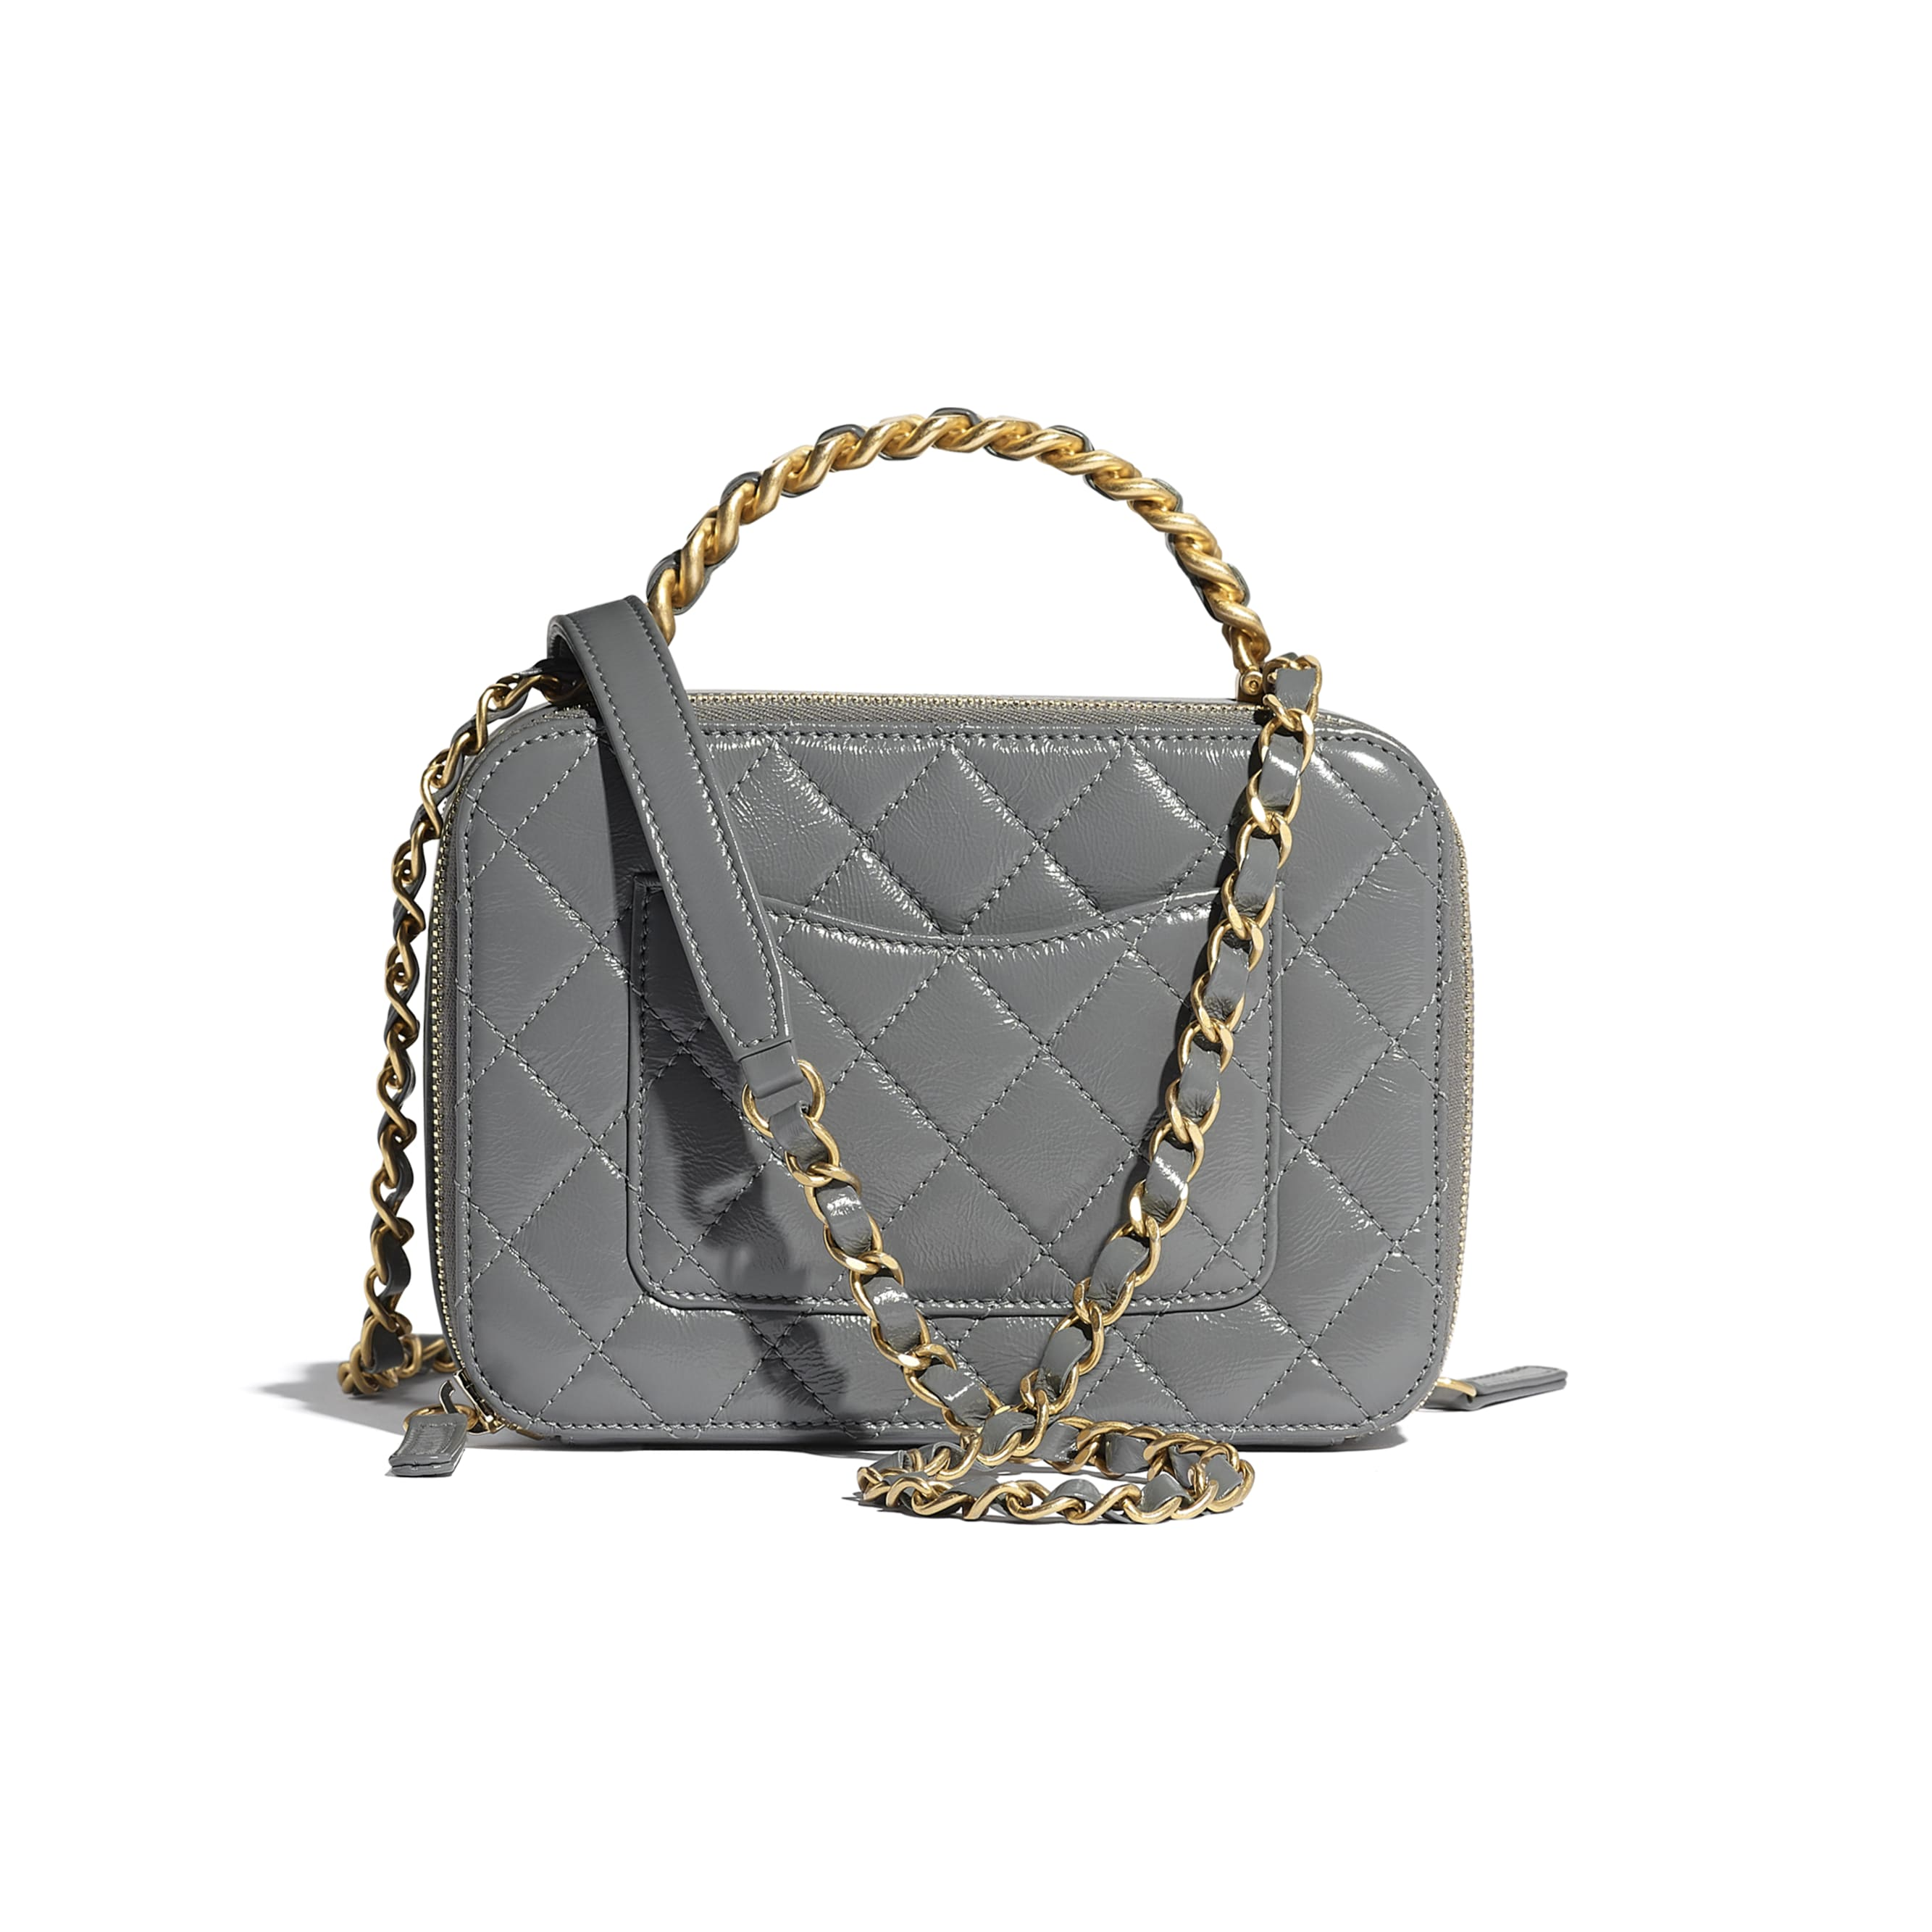 Vanity Case - Grey - Lambskin, Shiny Crumpled Calfskin & Gold-Tone Metal - CHANEL - Alternative view - see standard sized version